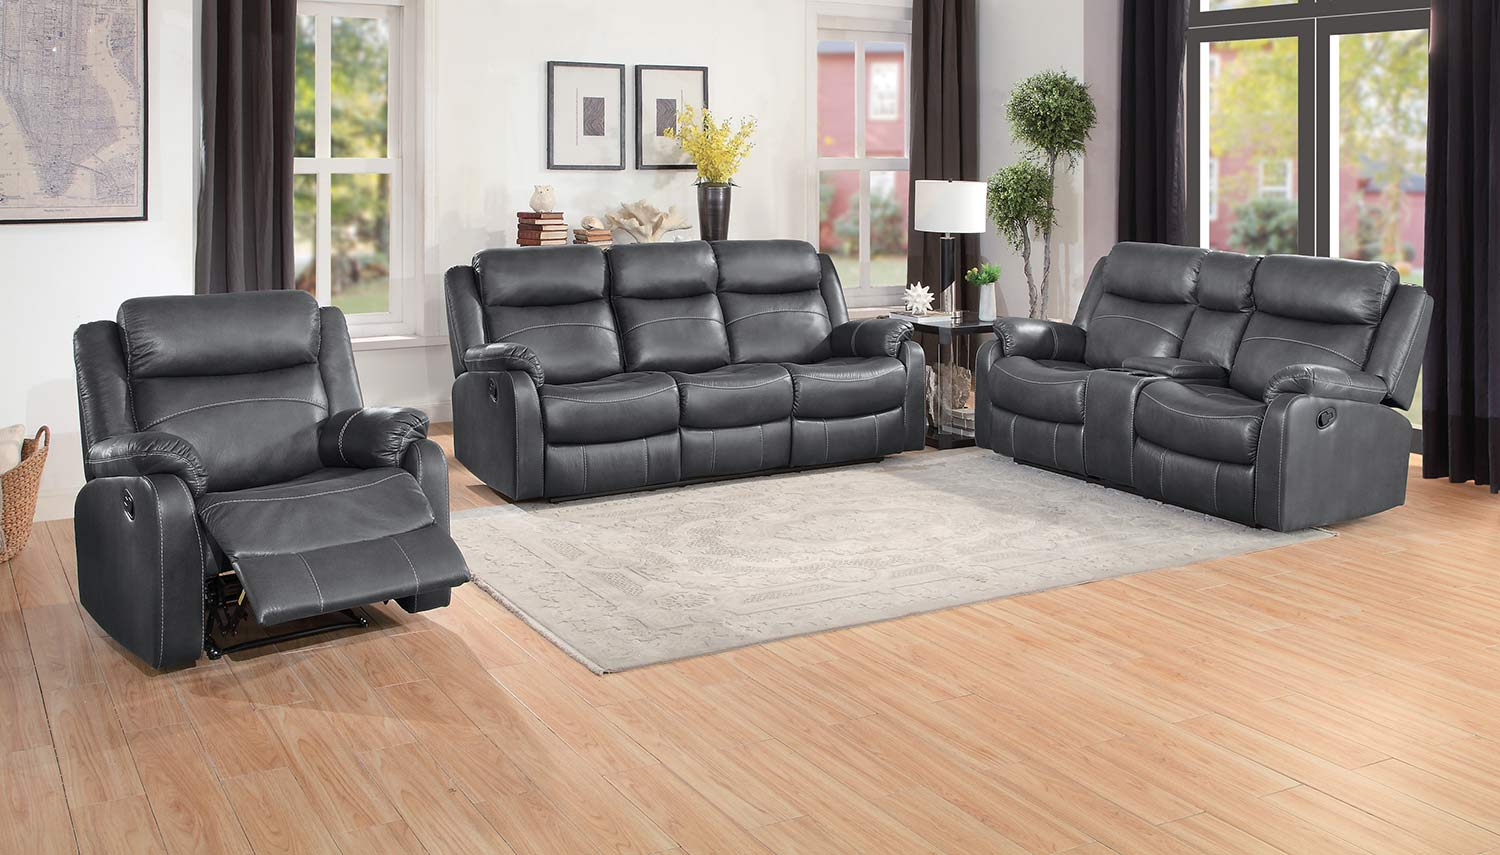 Homelegance Yerba Double Reclining Sofa Set - Dark Gray